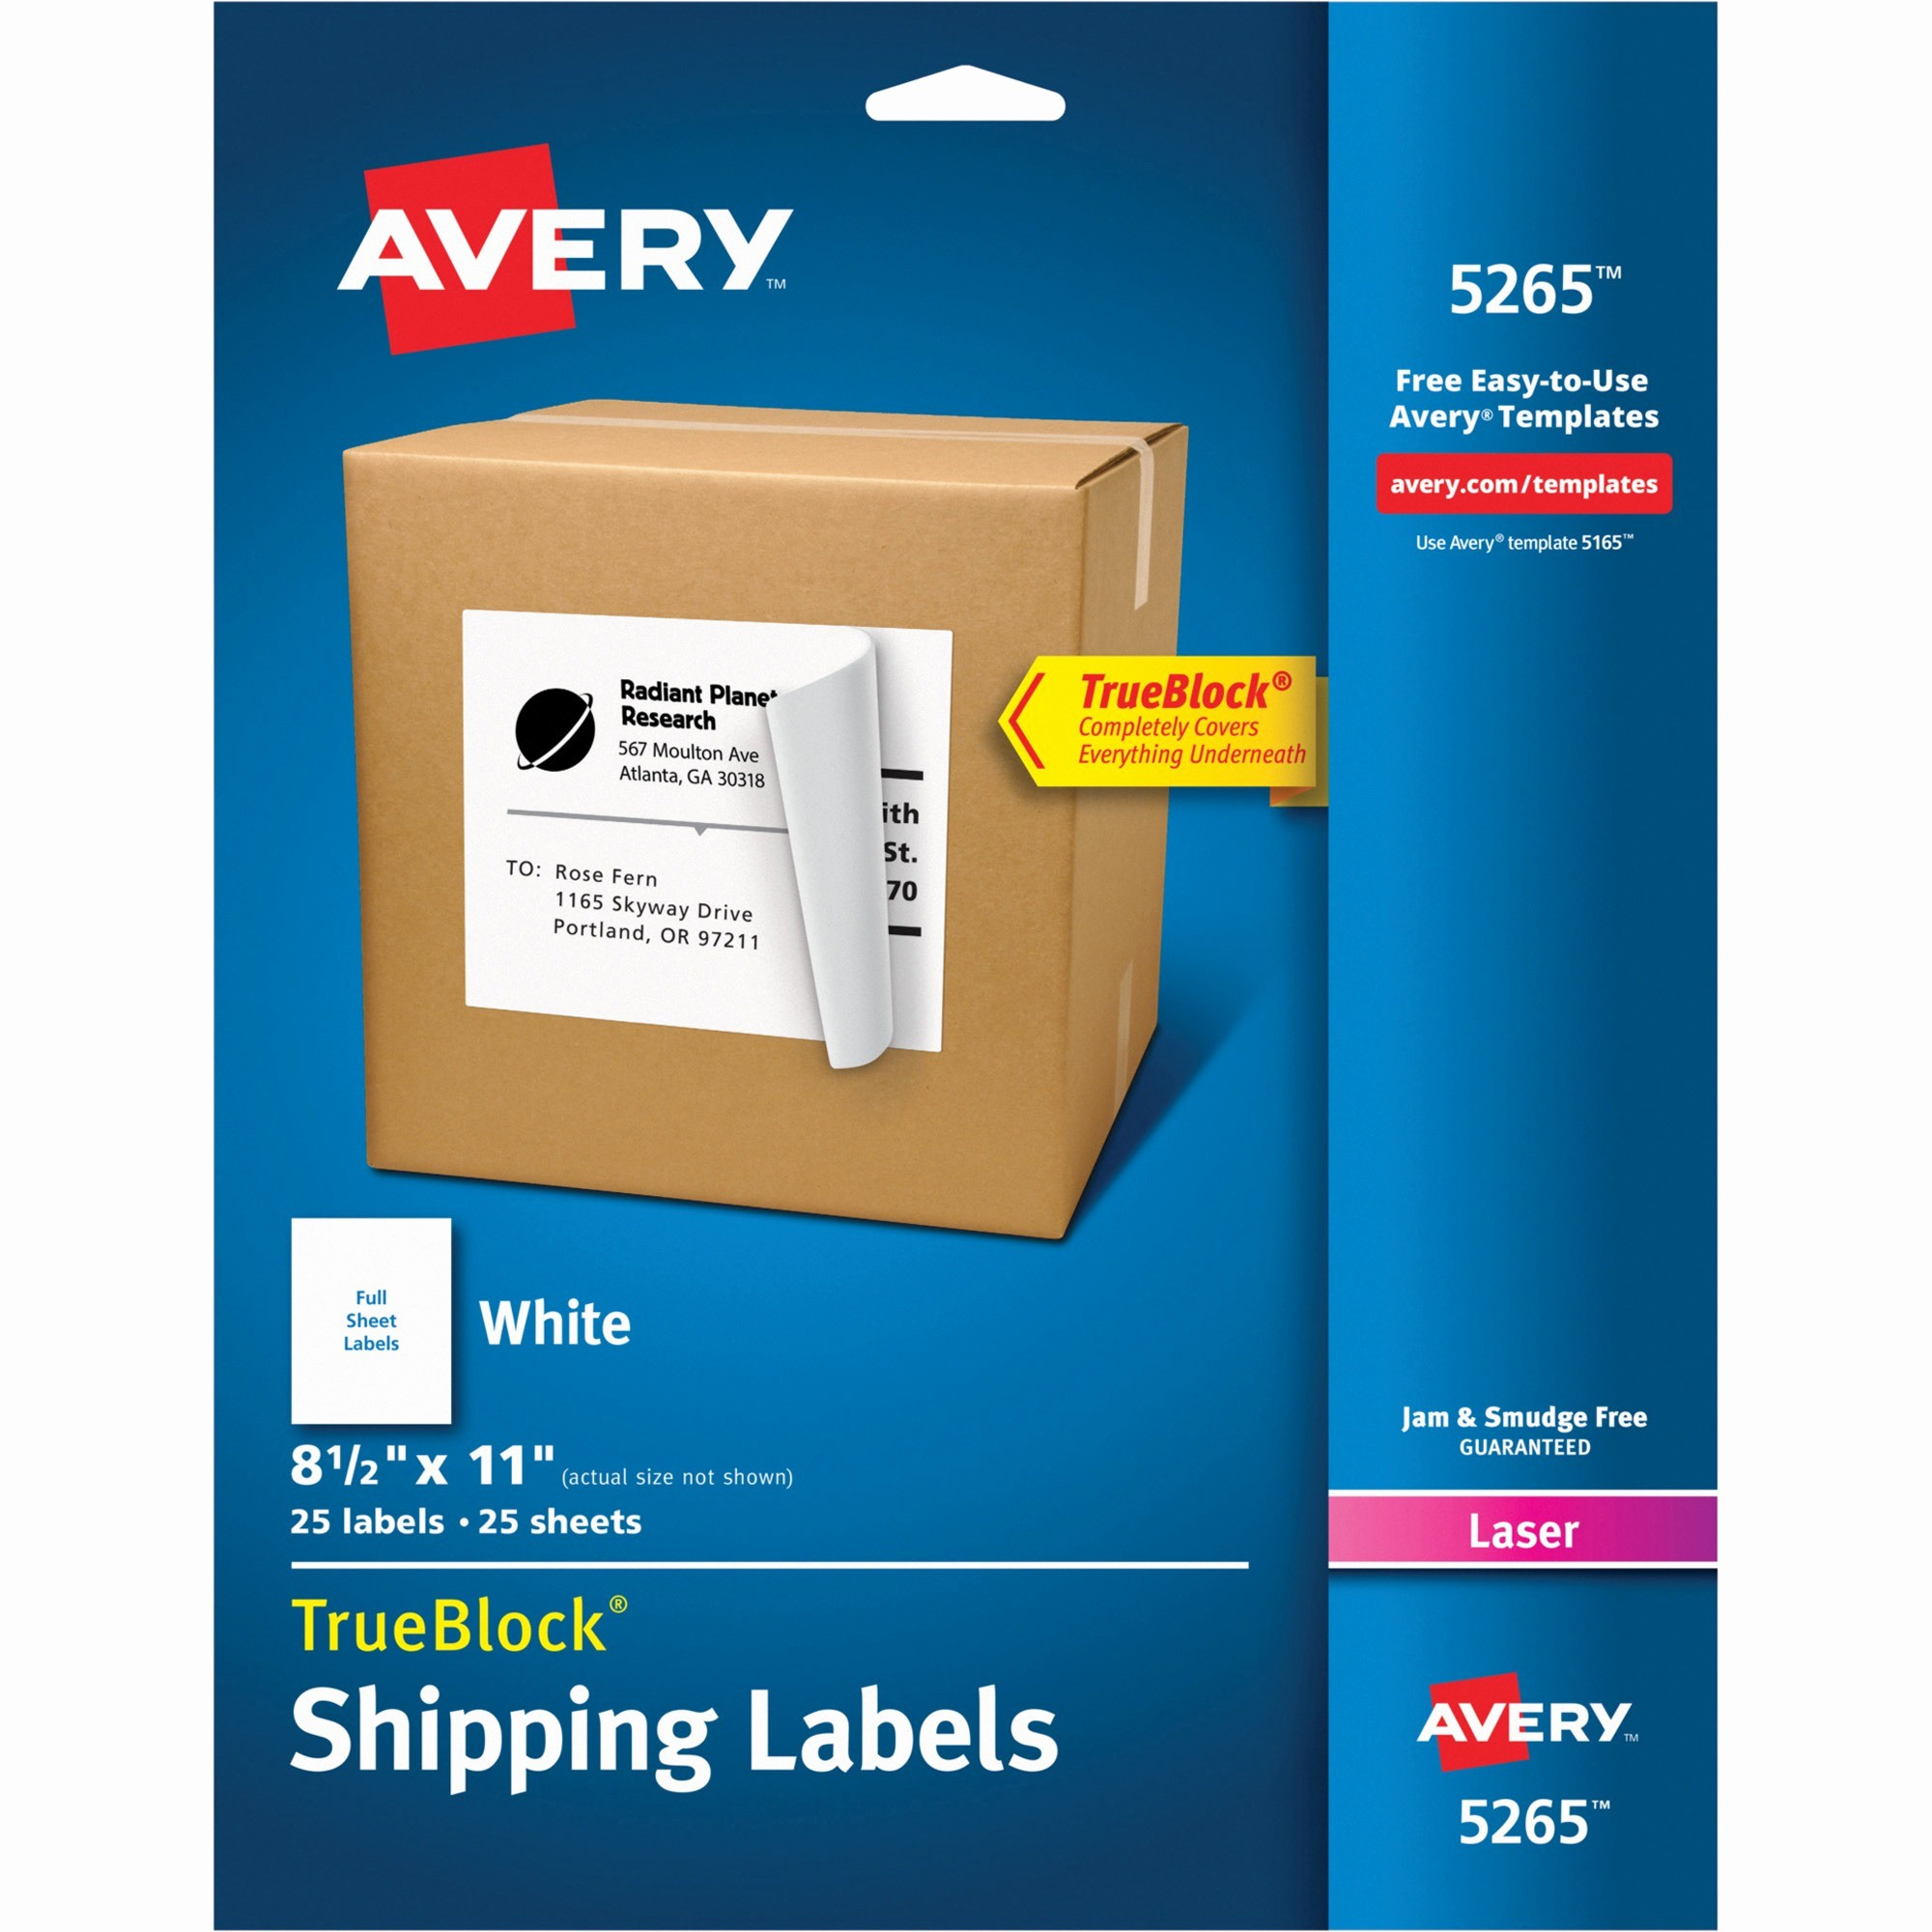 Avery 8167 Template Word 2007 Elegant How to Use Avery Labels